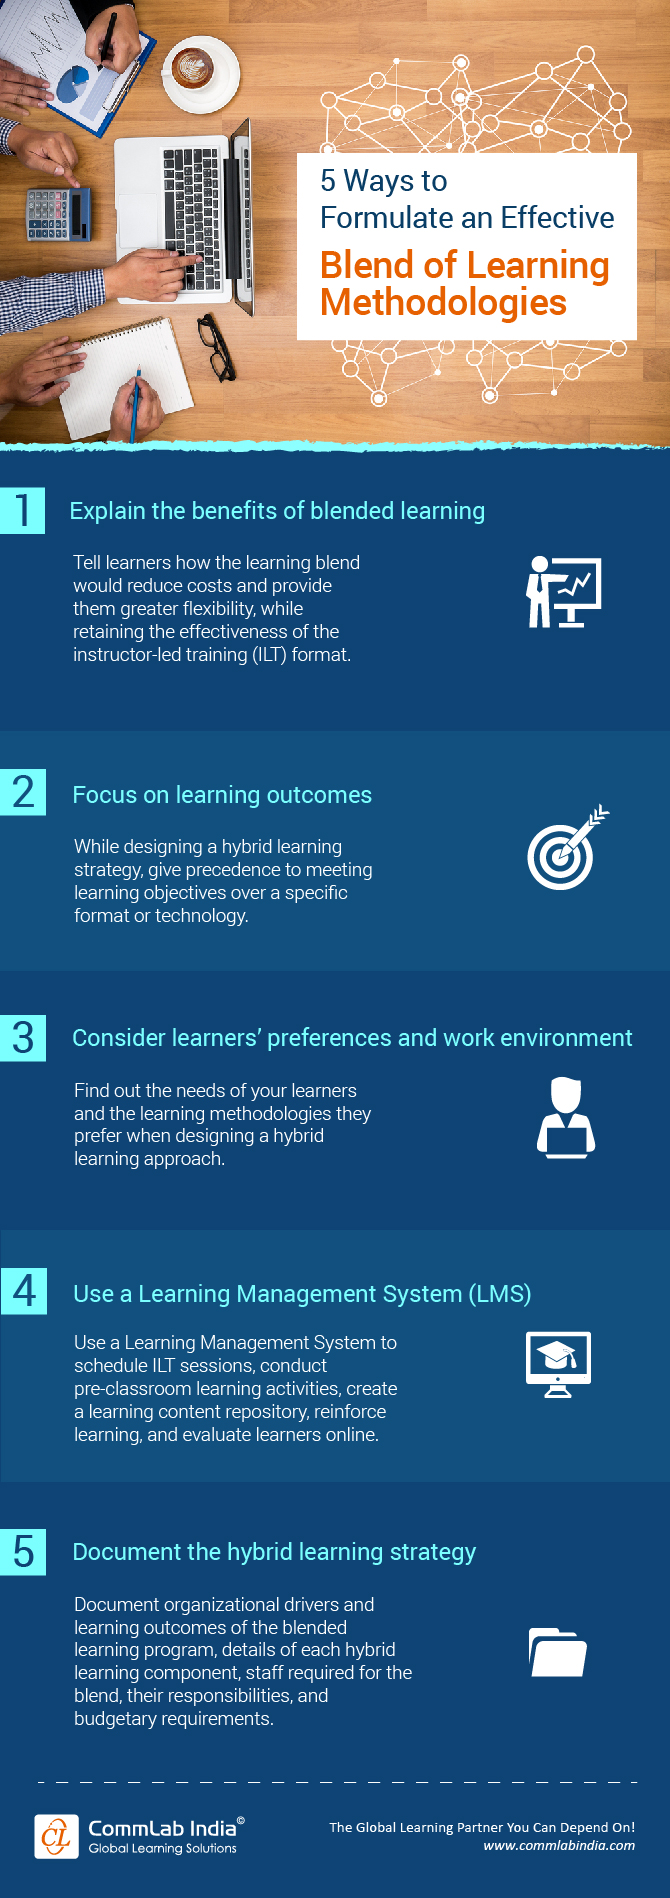 5 Ways to Formulate an Effective Blend of Learning Methodologies [Infographic]